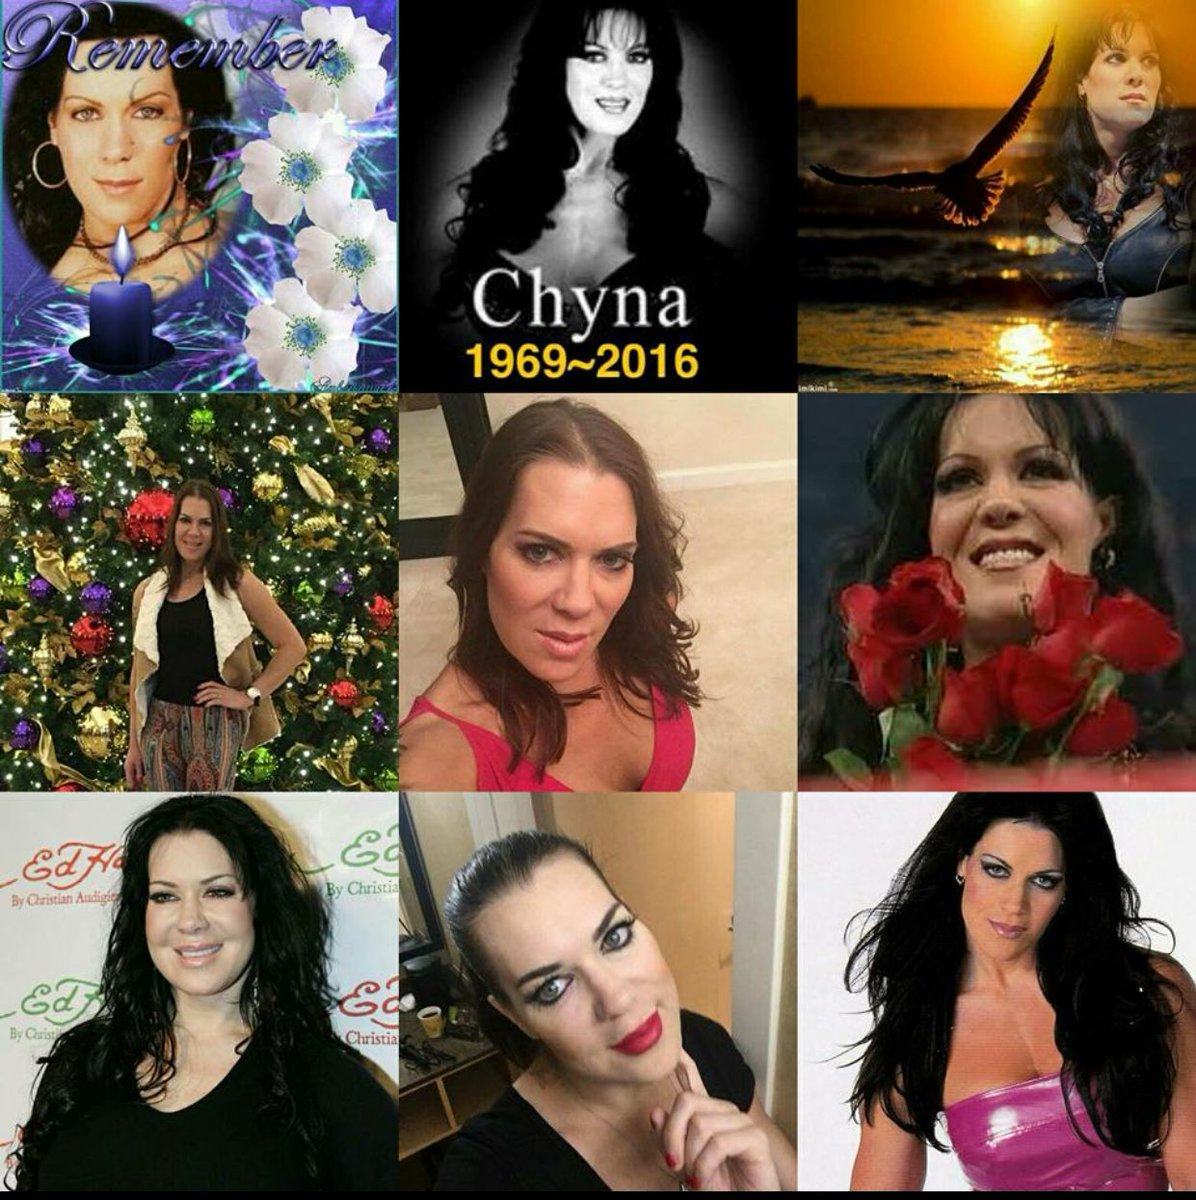 ChynaJoanLaurer photo